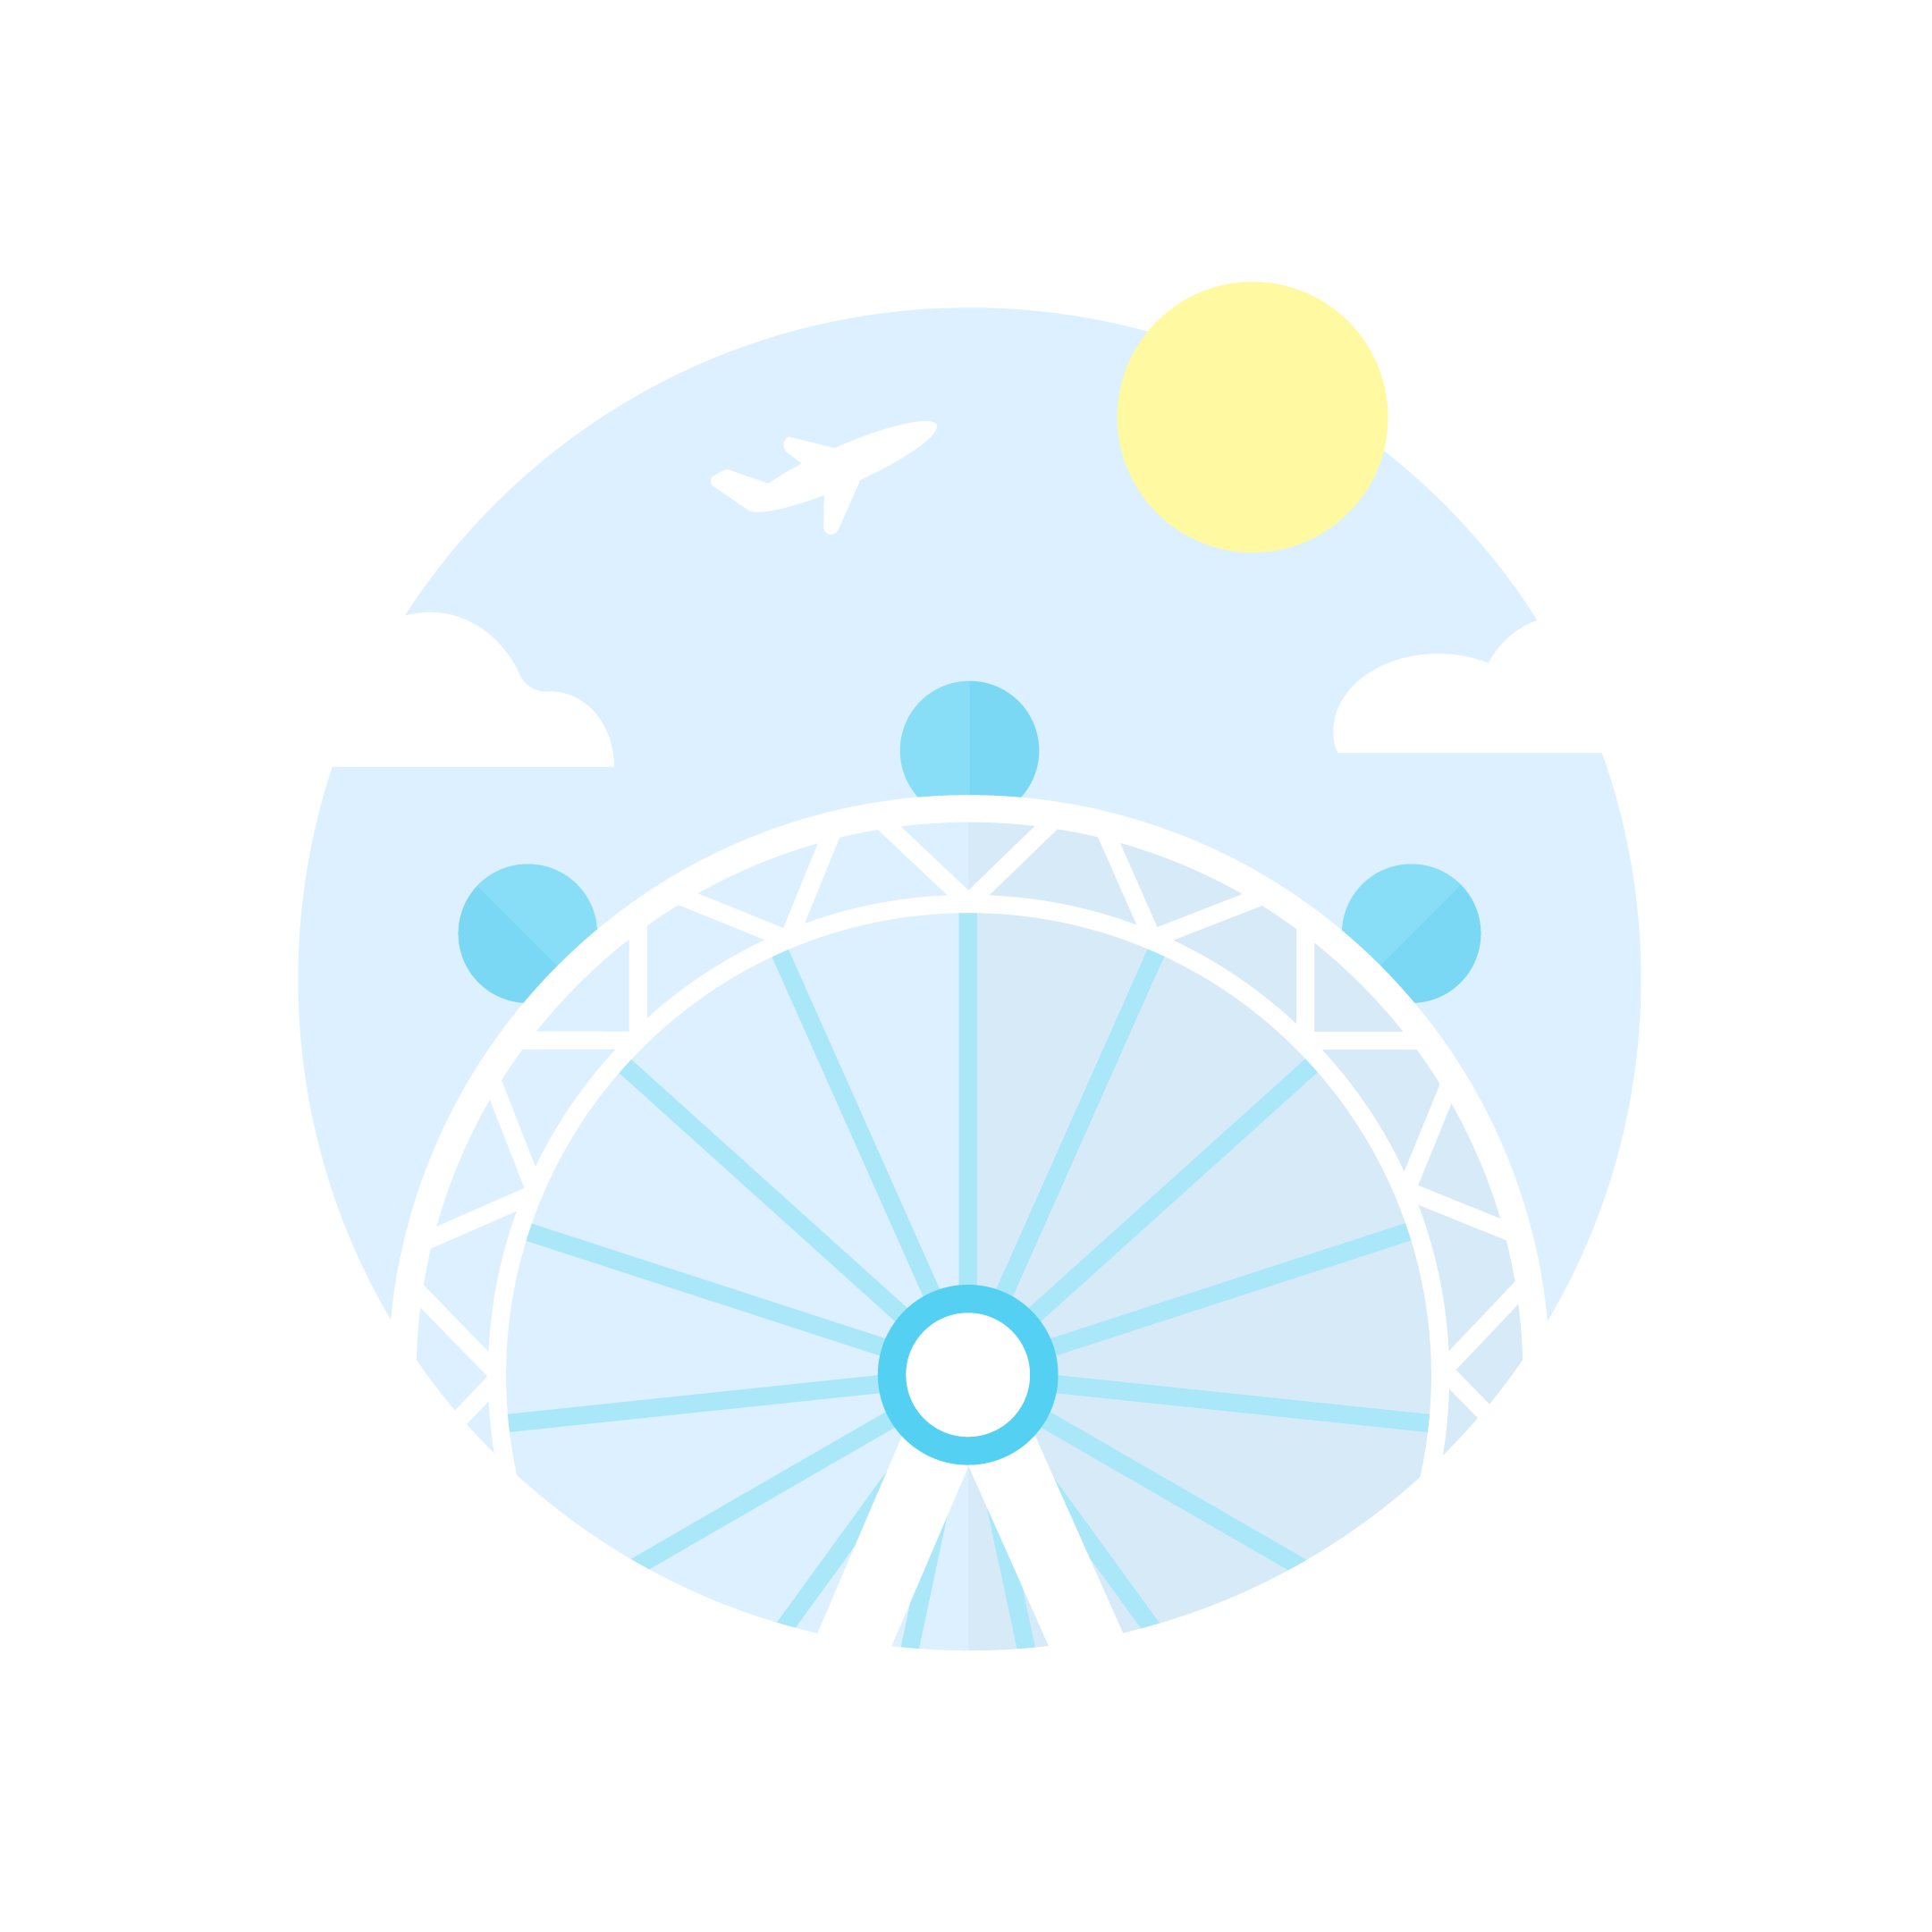 Vector illustration of the London Eye (Millennium Wheel) in the UK in a blue circle with clouds, sun & plane in flat design style